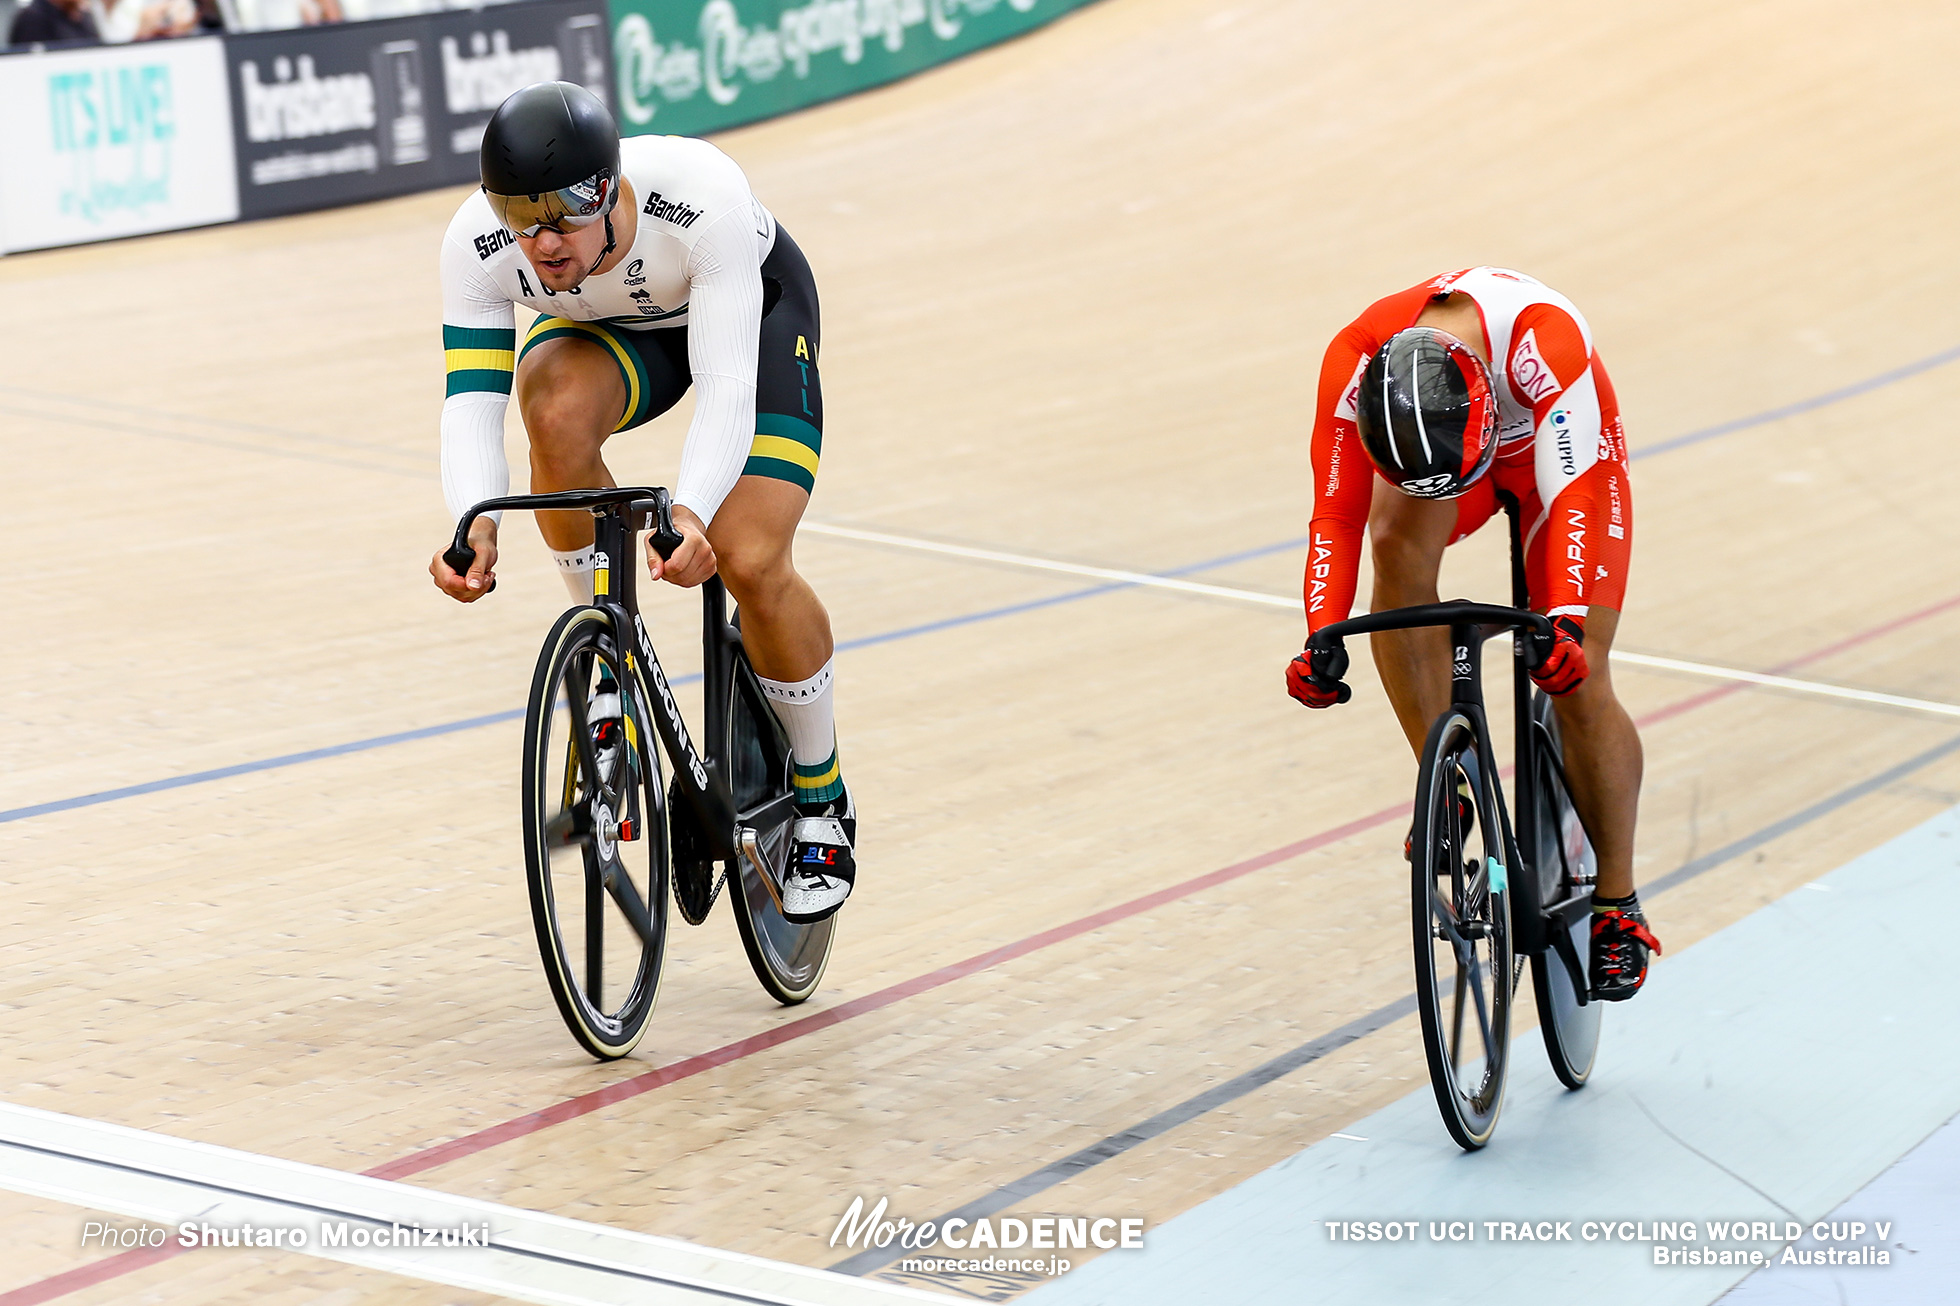 2nd Round / Men's Sprint / TISSOT UCI TRACK CYCLING WORLD CUP V, Brisbane, Australia